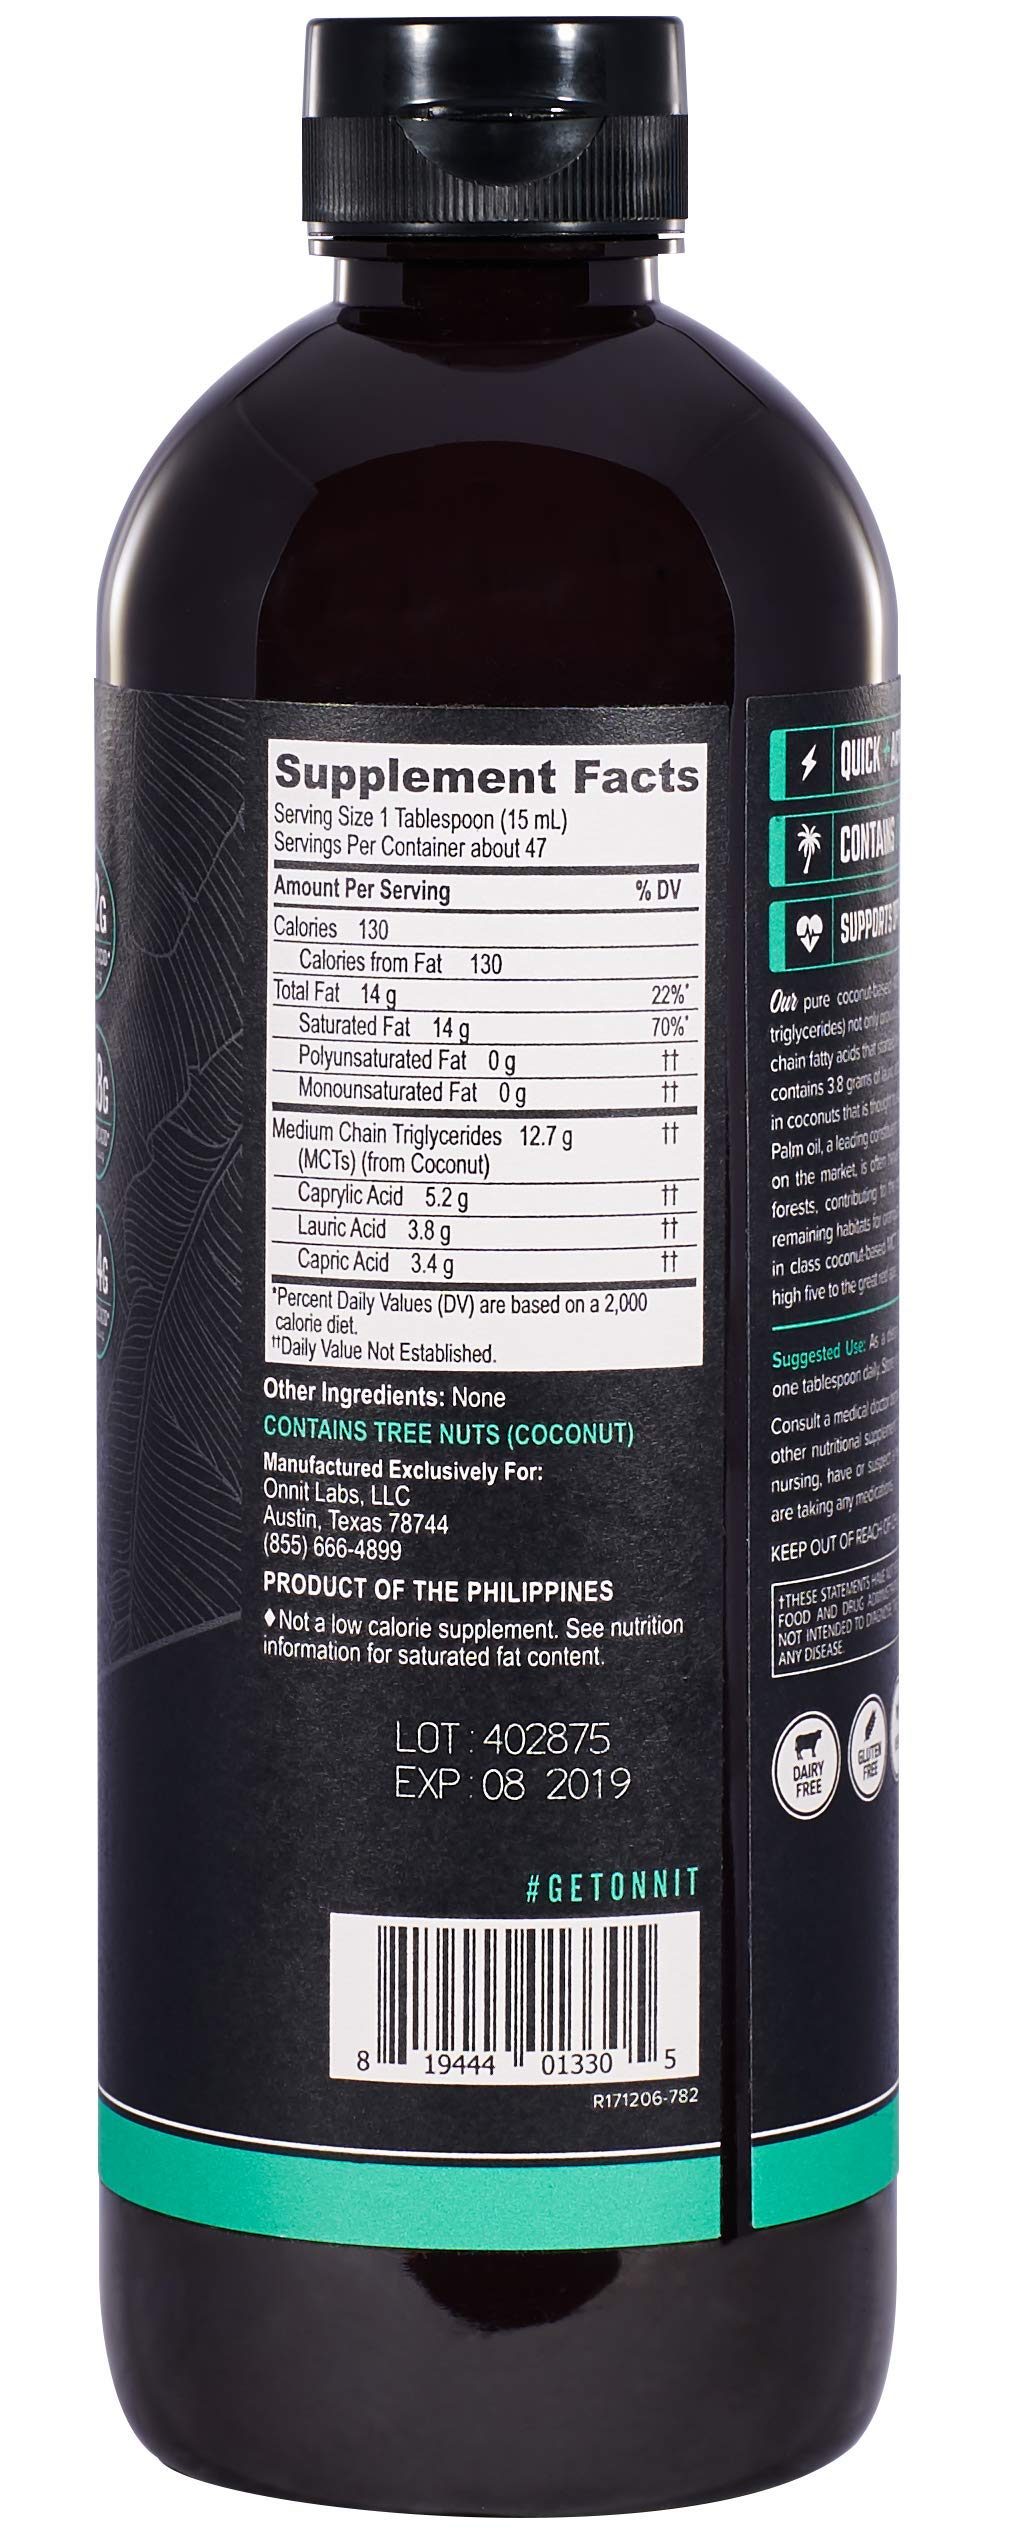 Onnit MCT Oil - Pure MCT Coconut Oil, Ketogenic Diet and Paleo Optimized with C8, C10, Lauric Acid - Perfect for Coffee, Shakes, and Cooking (Flavorless - 24oz) by ONNIT (Image #2)